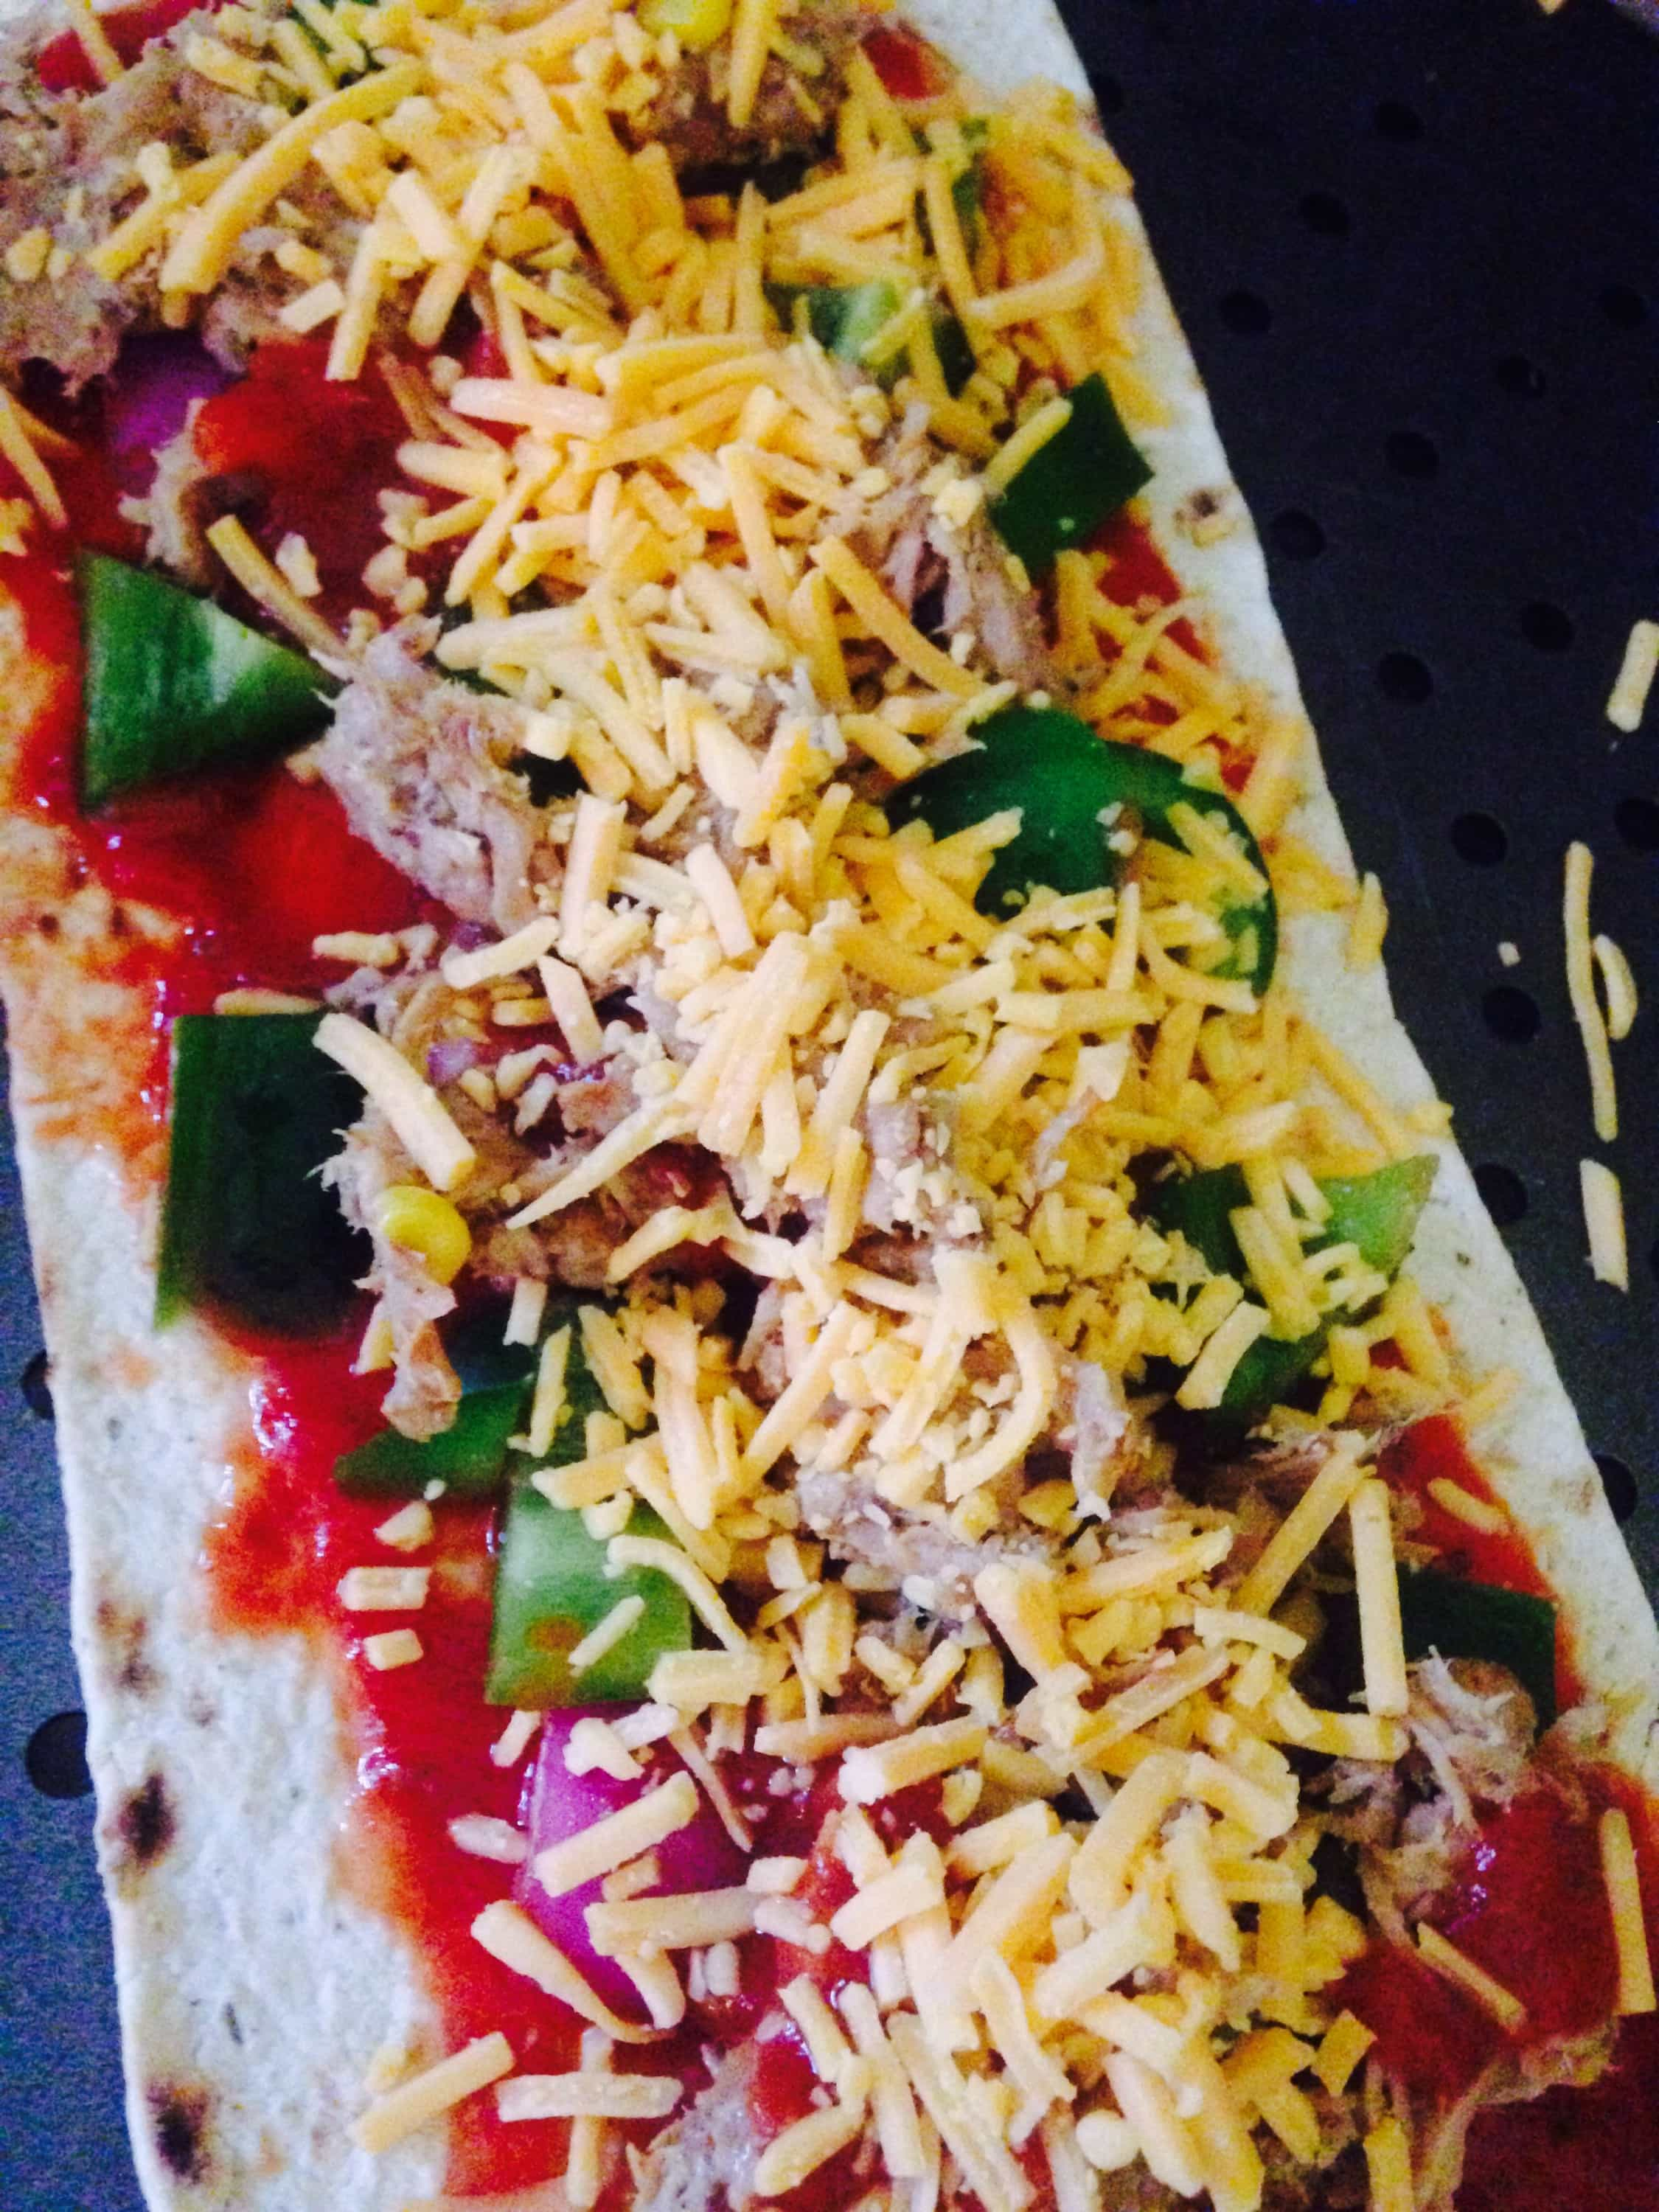 Pork Enchiladas Flatbread Pizza - a healthy comfort food, made with leftover pork carnitas, homemade enchilada sauce, peppers, onions, and cheddar cheese. It is a delicious, 21 Day Fix approved meal!